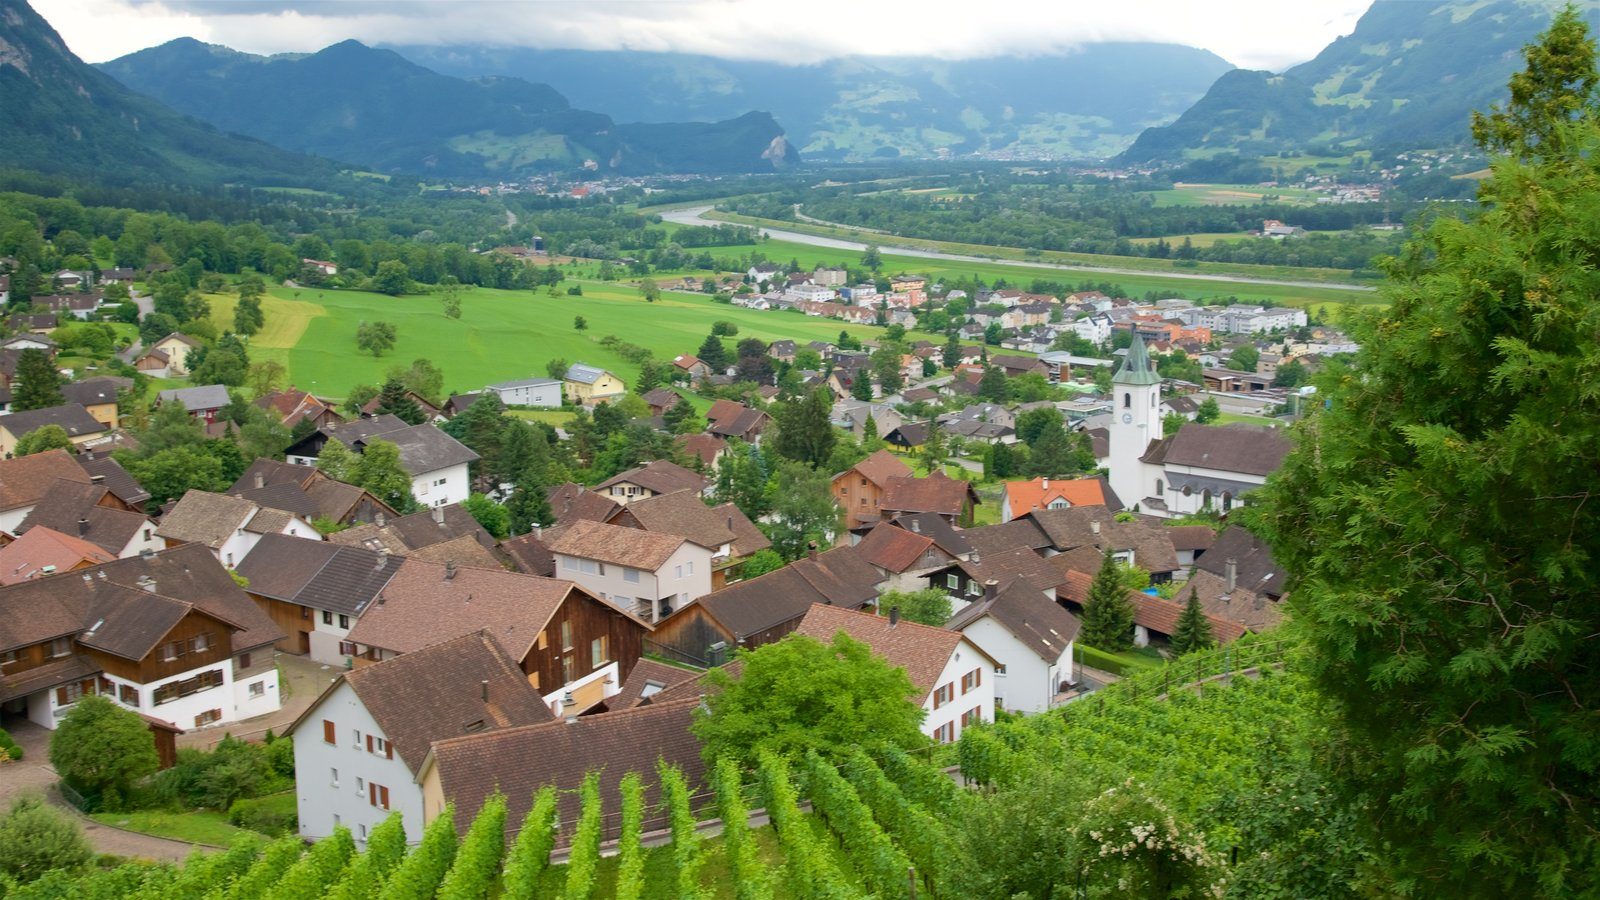 Liechtenstein showing farmland, tranquil scenes and a small town or village